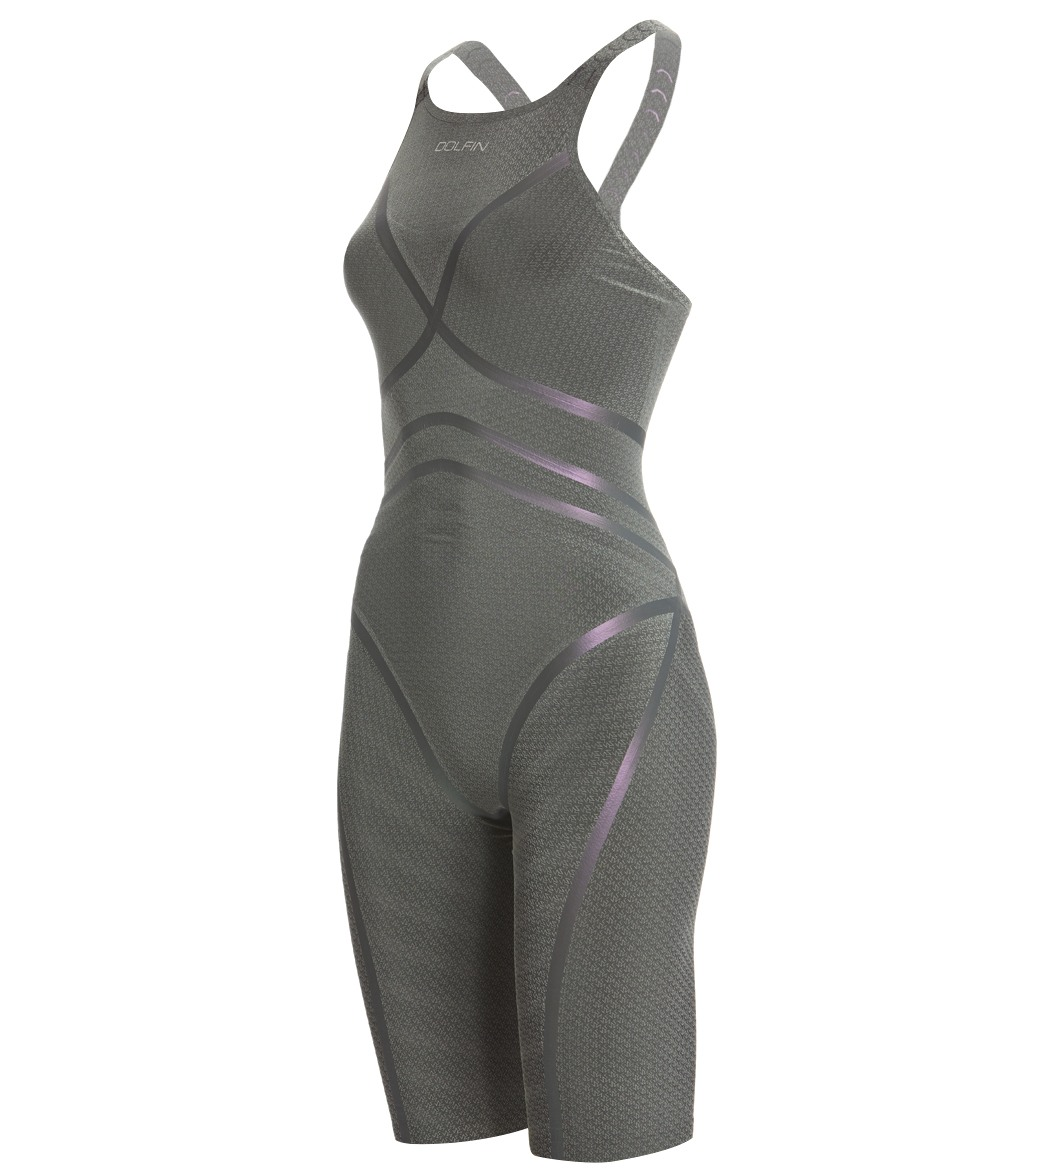 Dolfin Women's Lightstrike Tech Suit Swimsuit